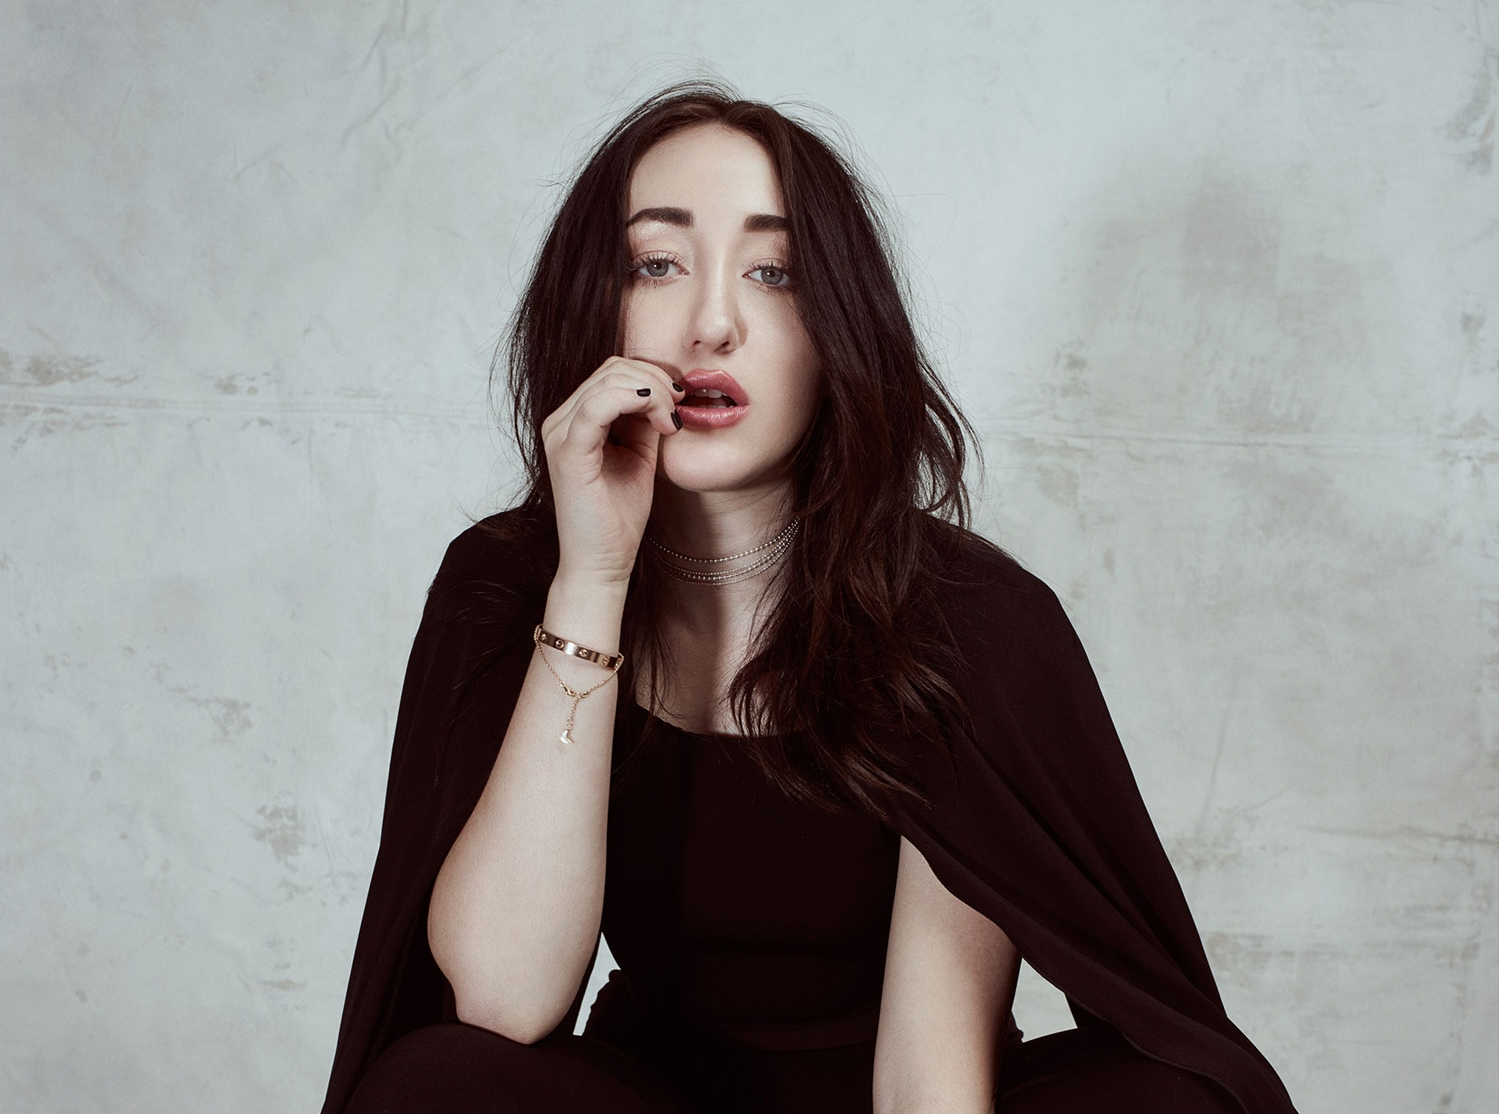 Noah Cyrus Levitate In Her Striking 'Lonely' Video: Fans Review and Reactions